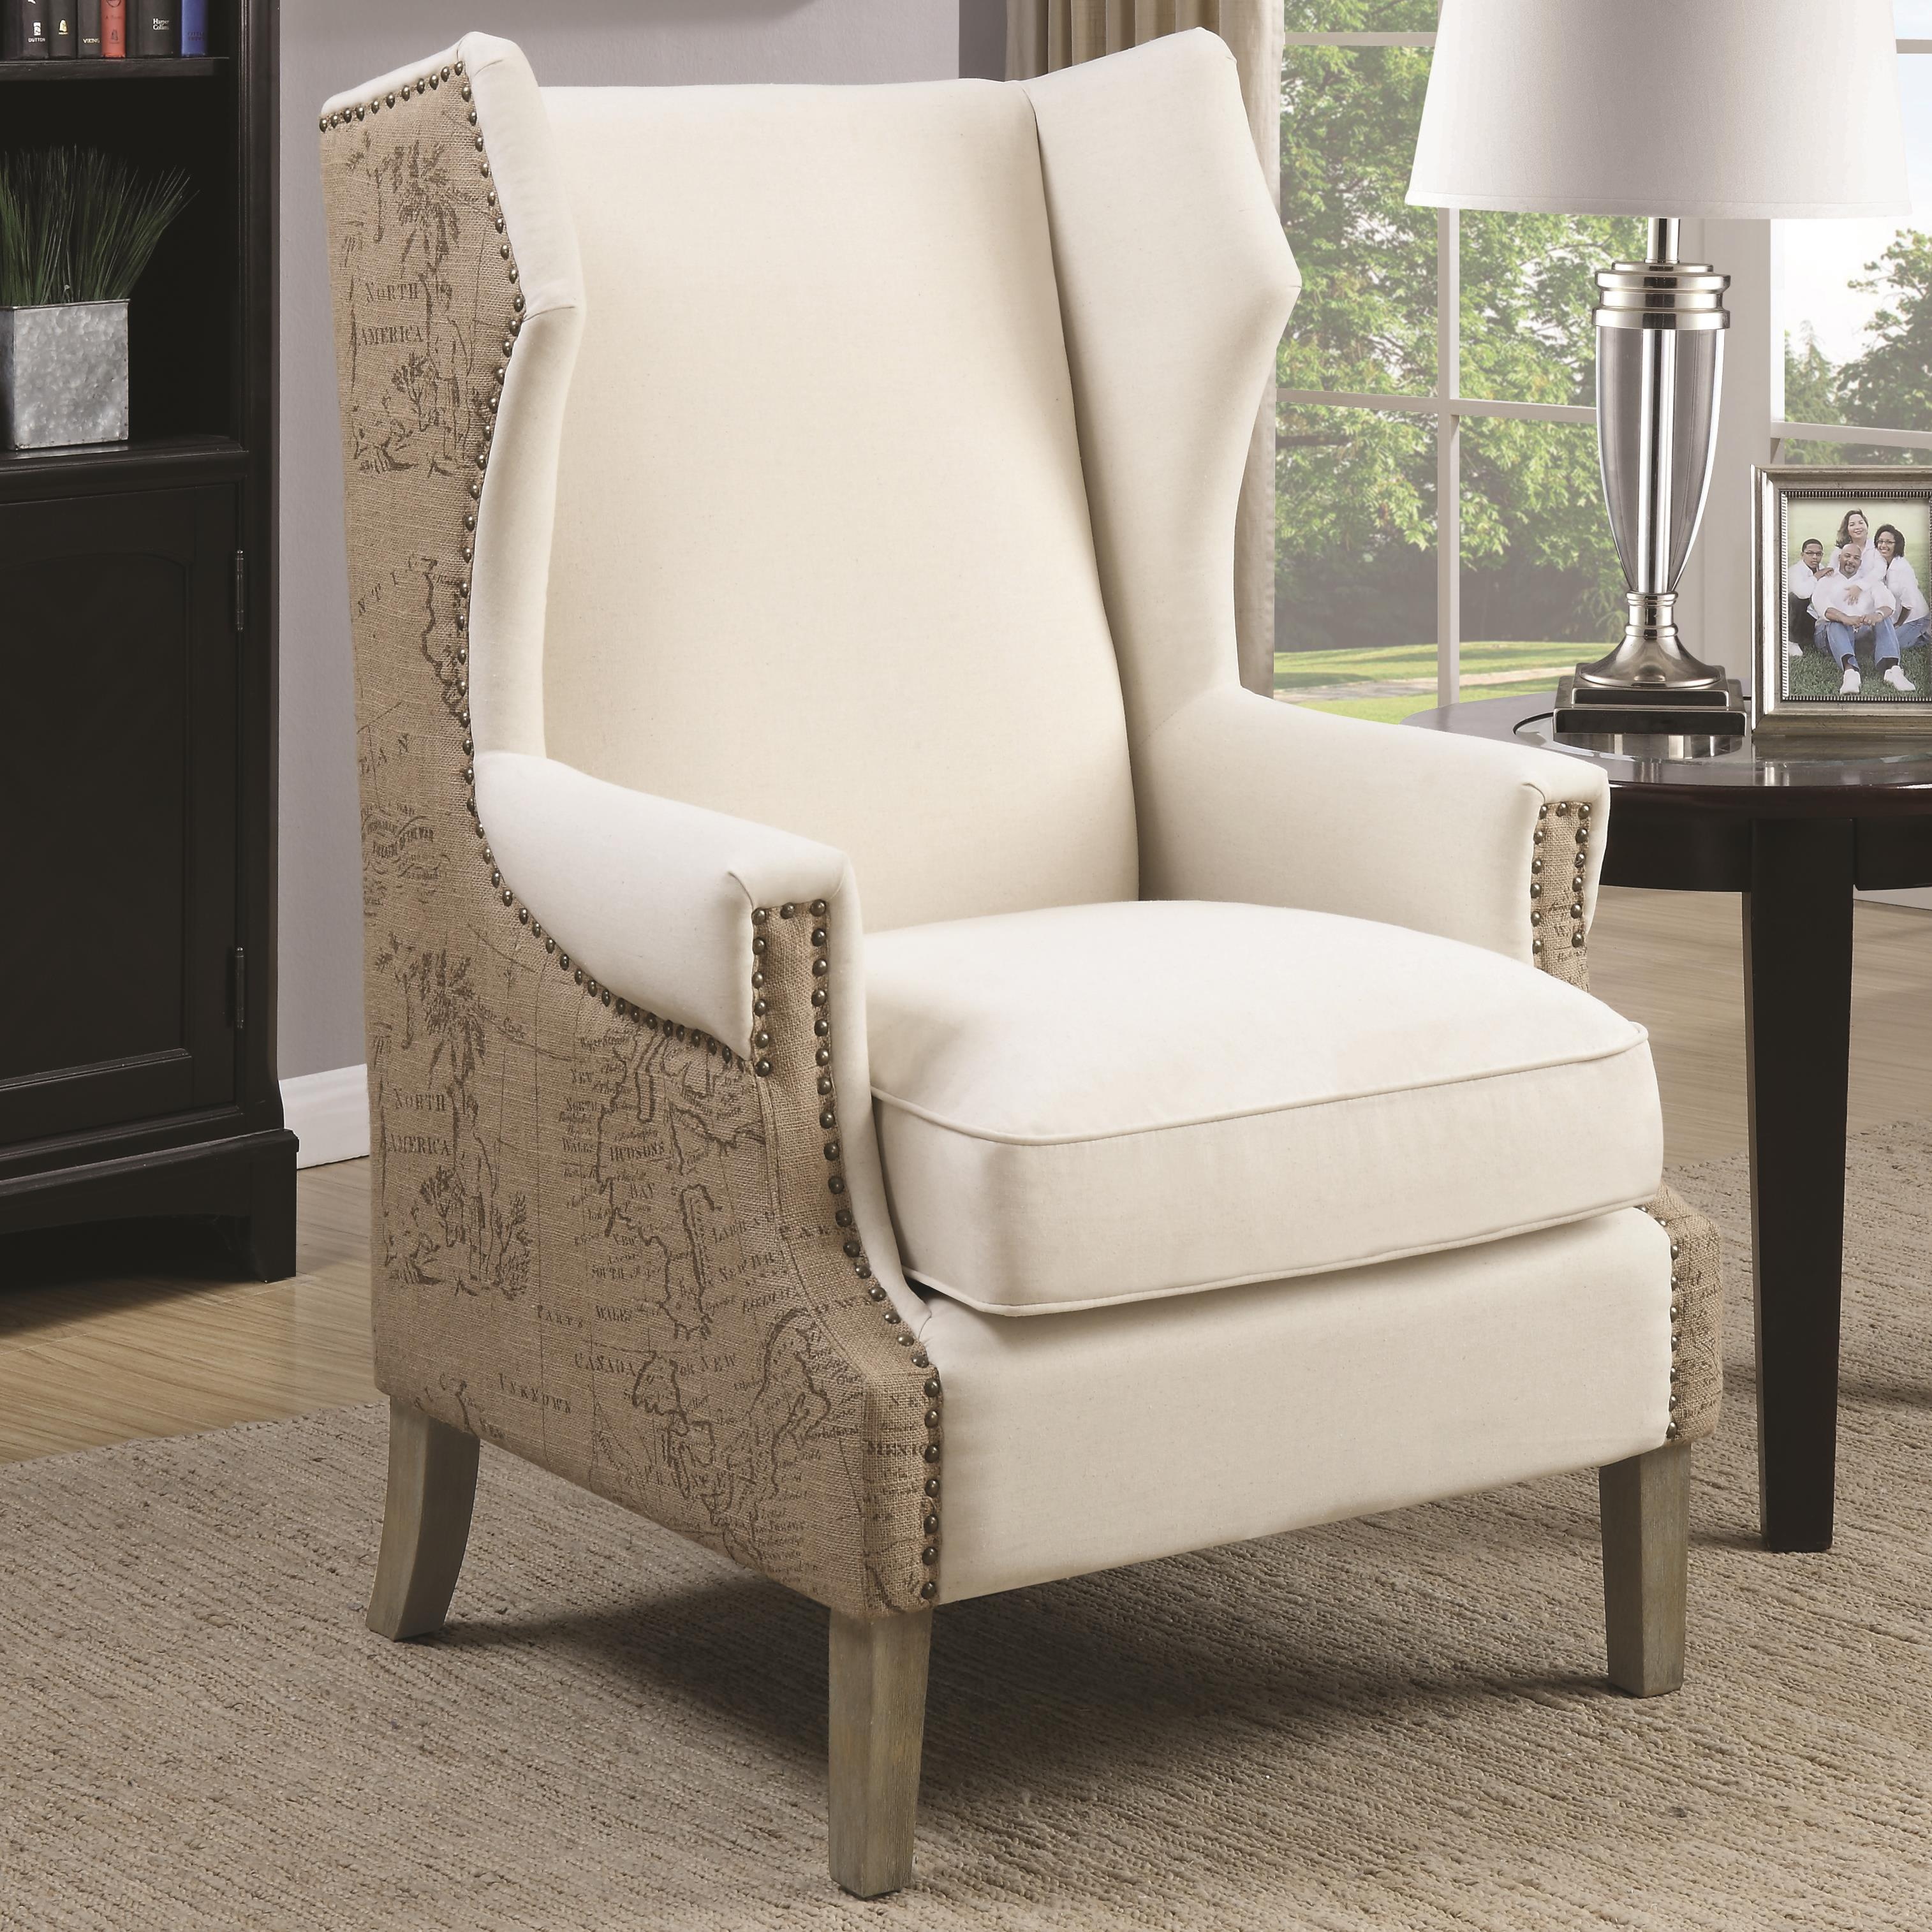 Missoni Style Print Accent Chair: Accent Chair With Wing Back Design And Map Print